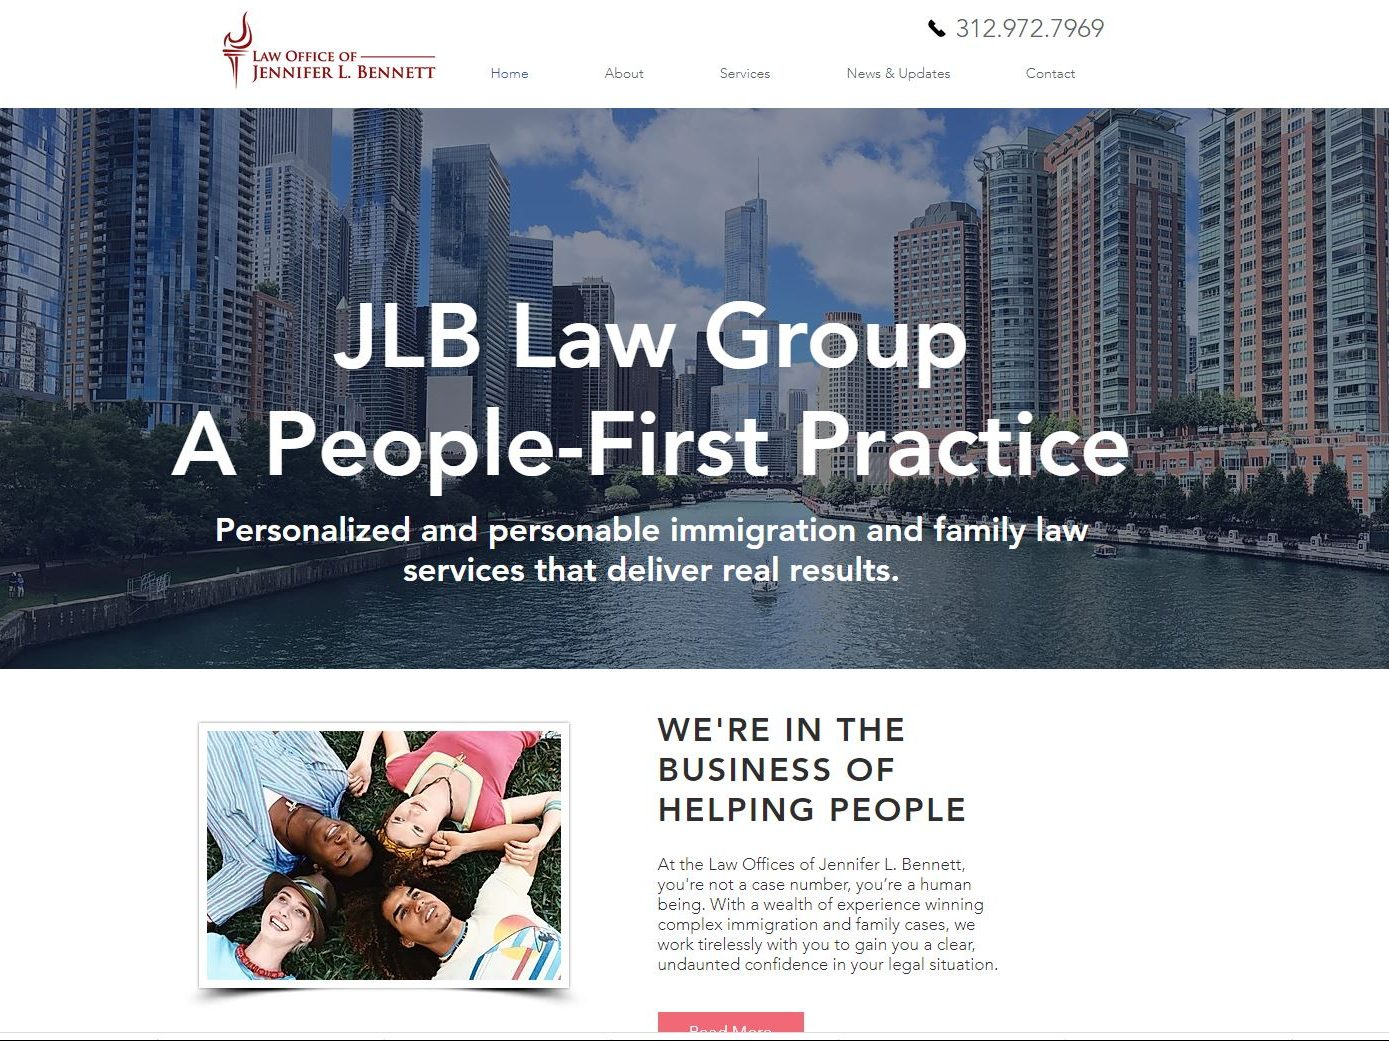 JLB Law Group